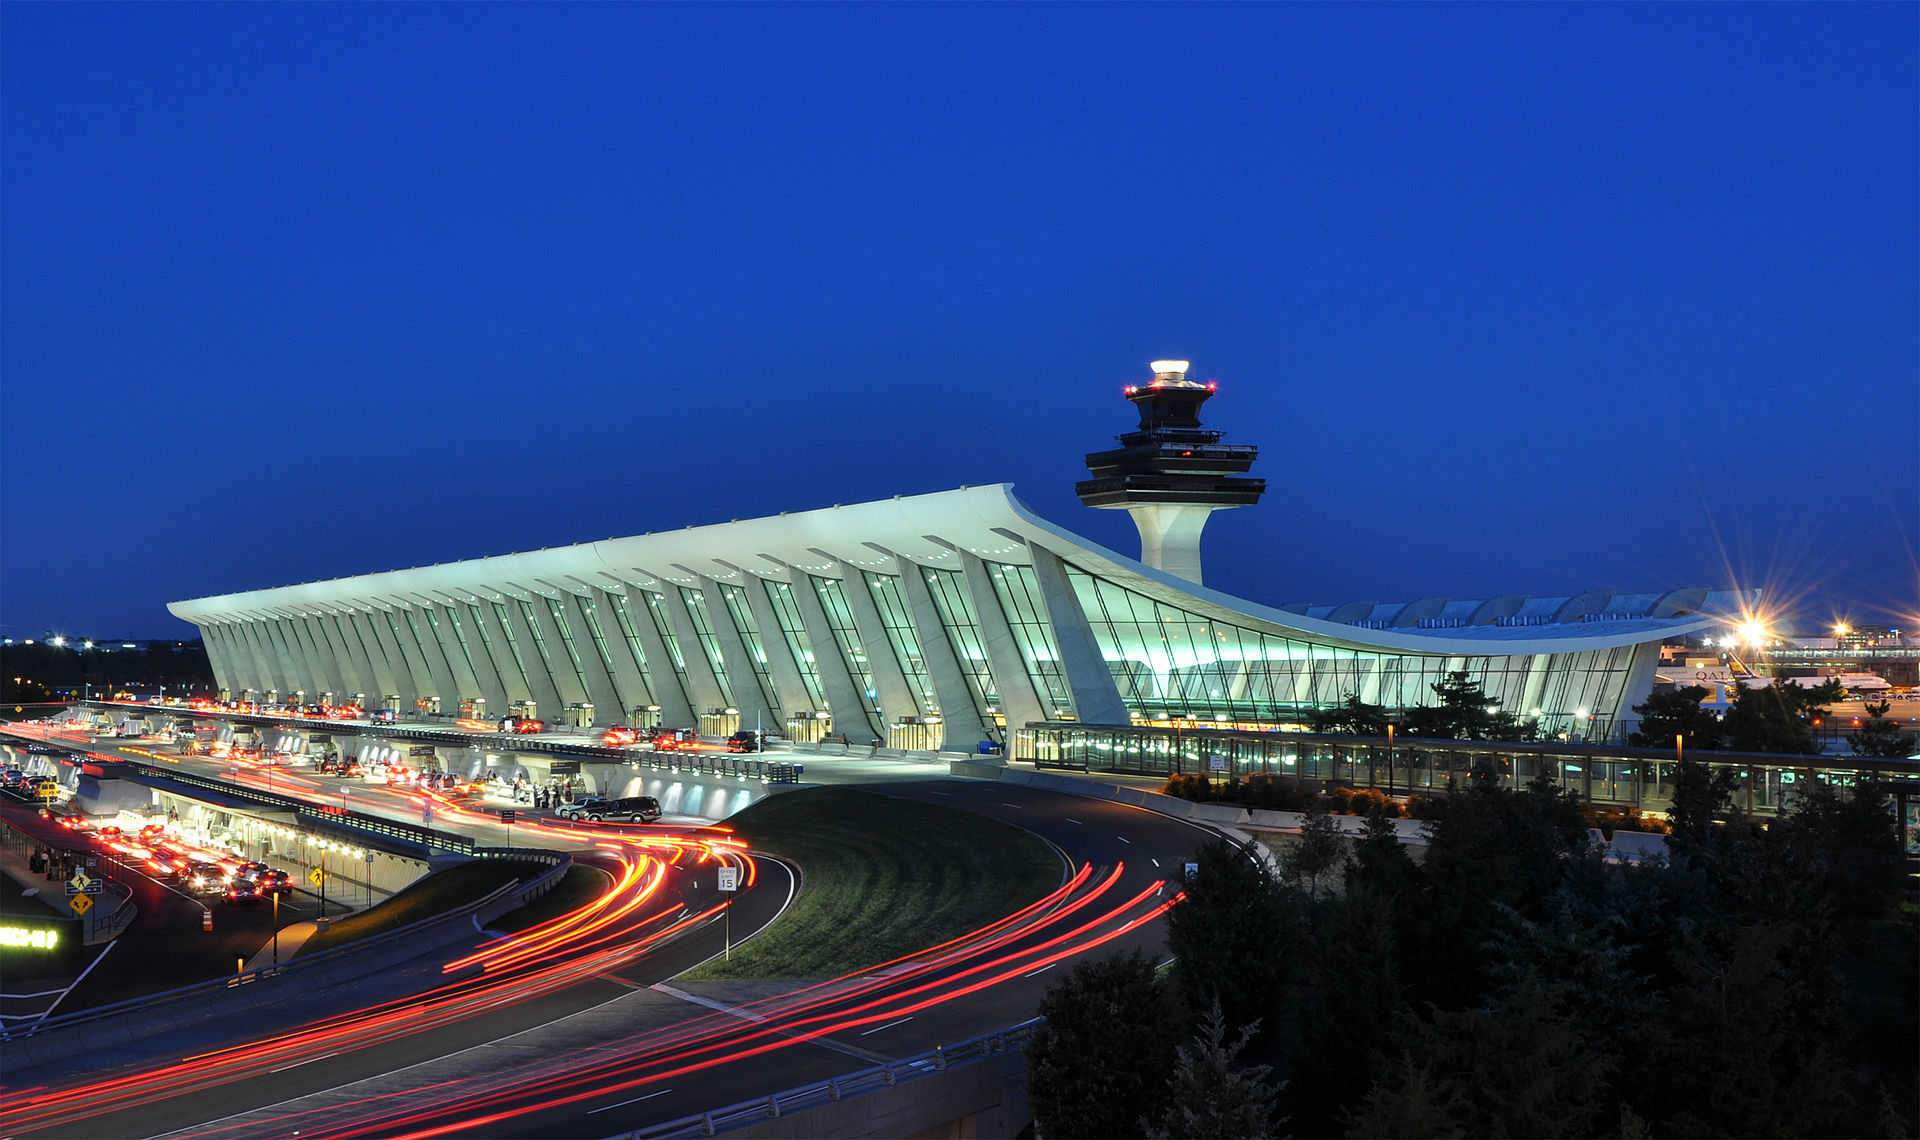 1920px-Washington_Dulles_International_Airport_at_Dusk.jpg